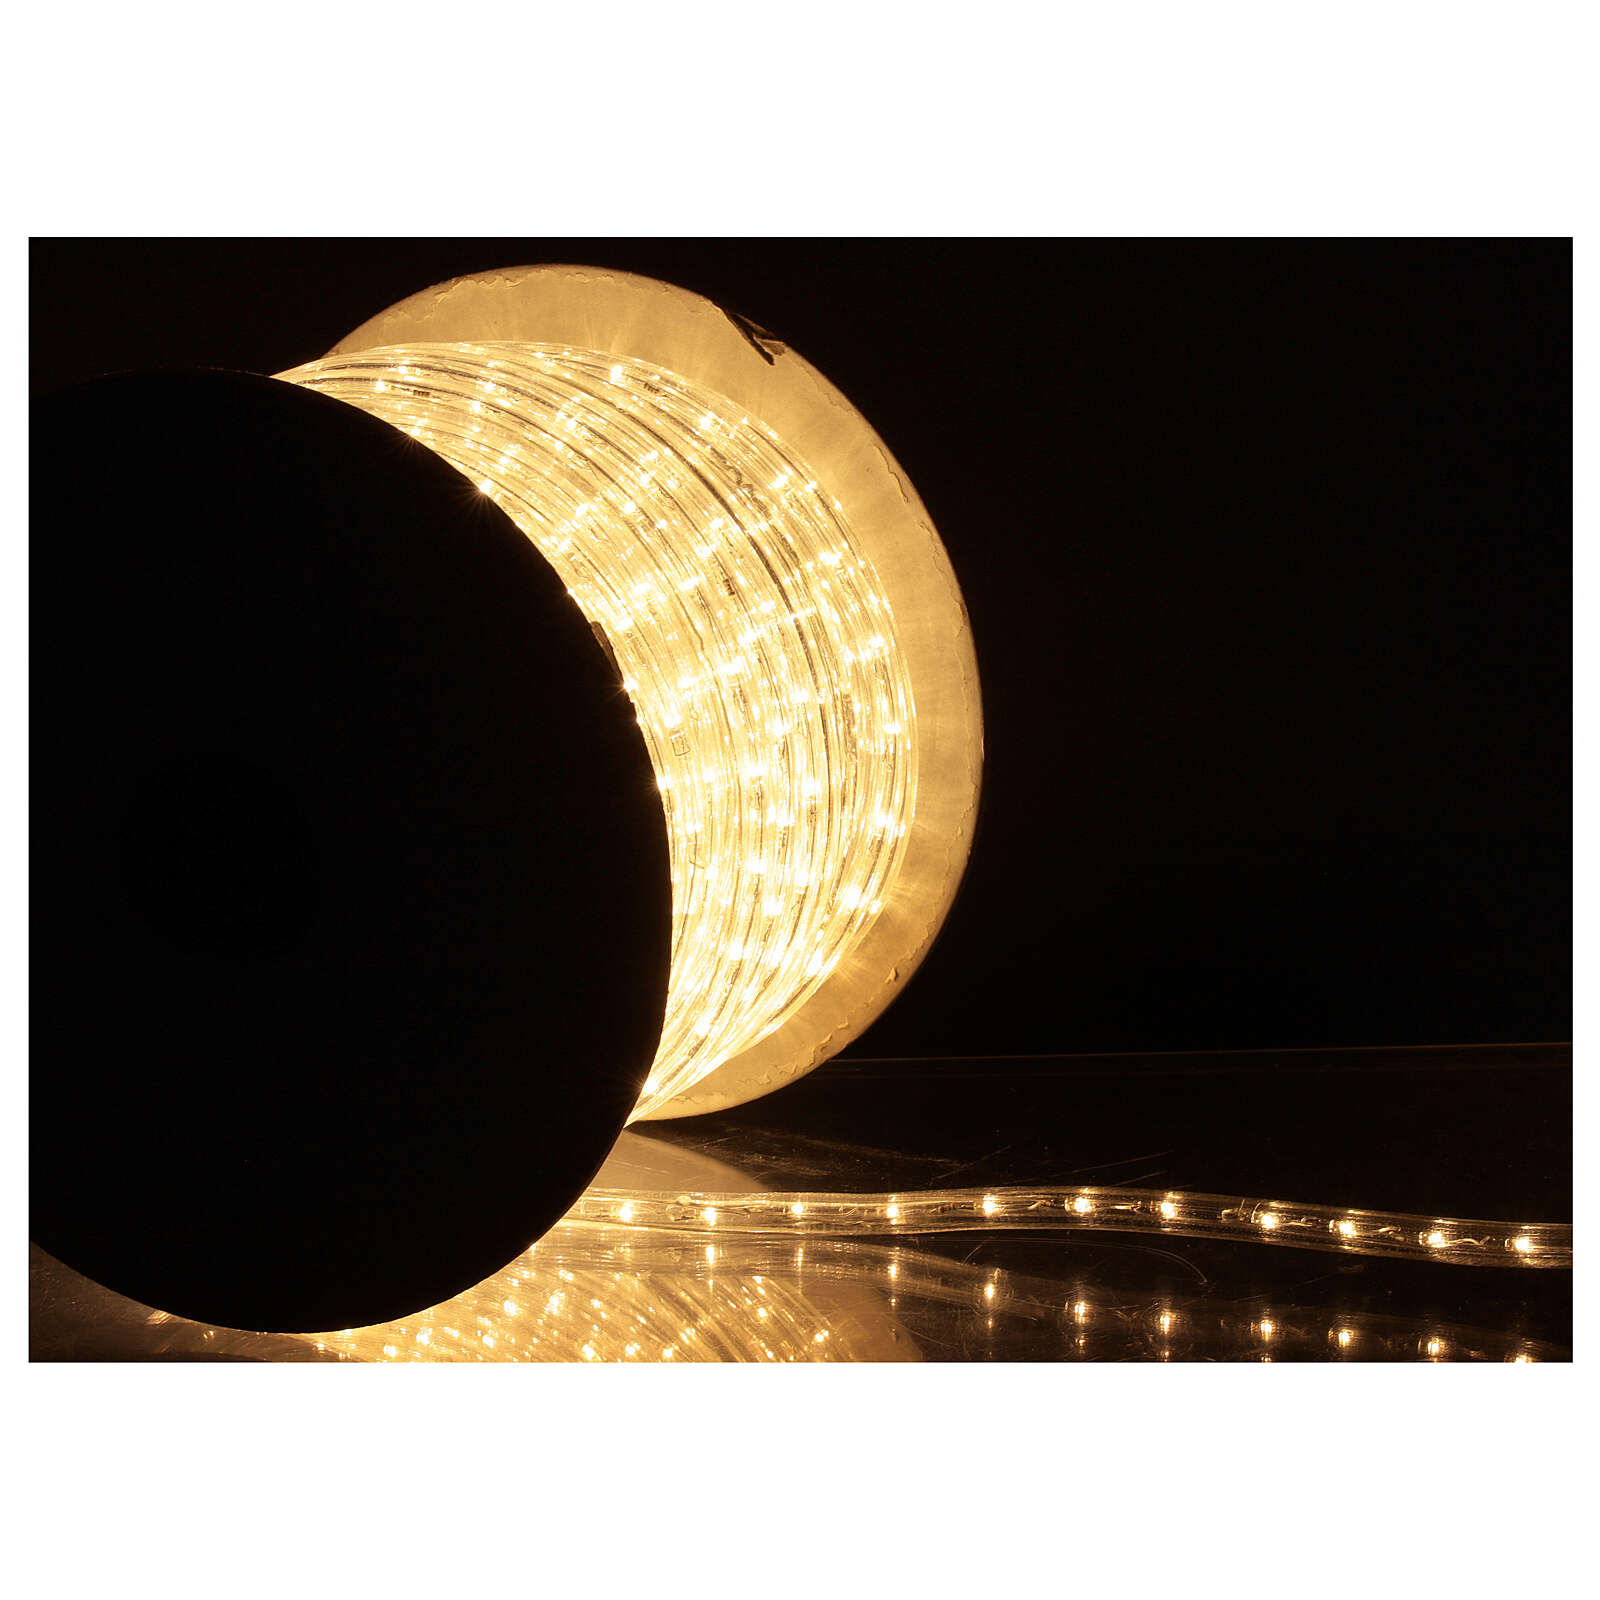 LED strip lights PROFESSIONAL 2 wires 1584 warm white LEDs 44 m electric powered OUTDOOR 3